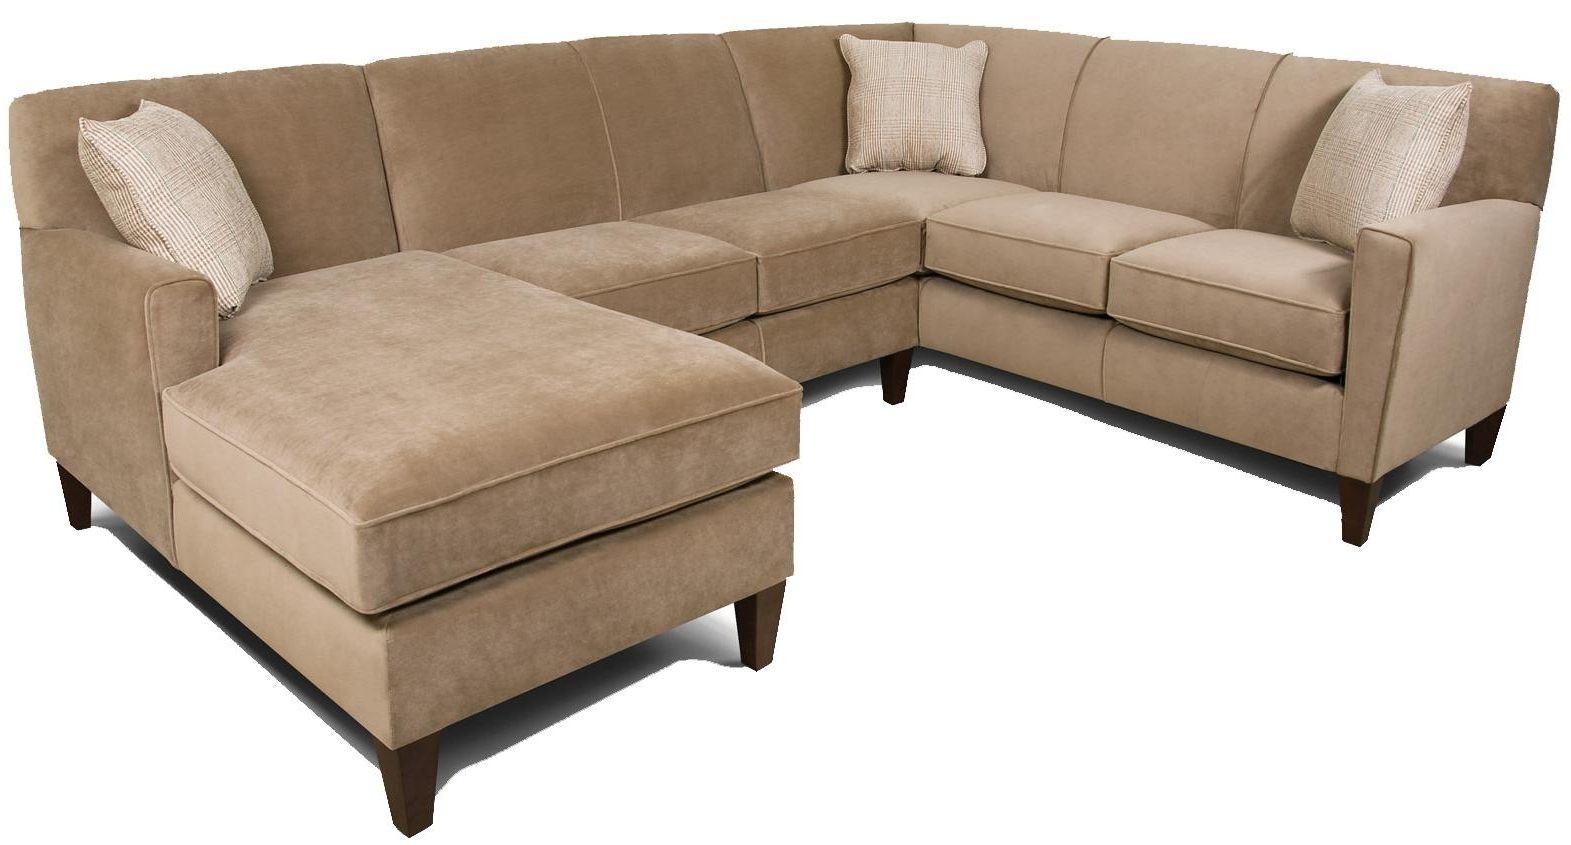 2019 England Collegedale Contemporary 3 Piece Sectional Sofa With Raf In England Sectional Sofas (View 15 of 20)